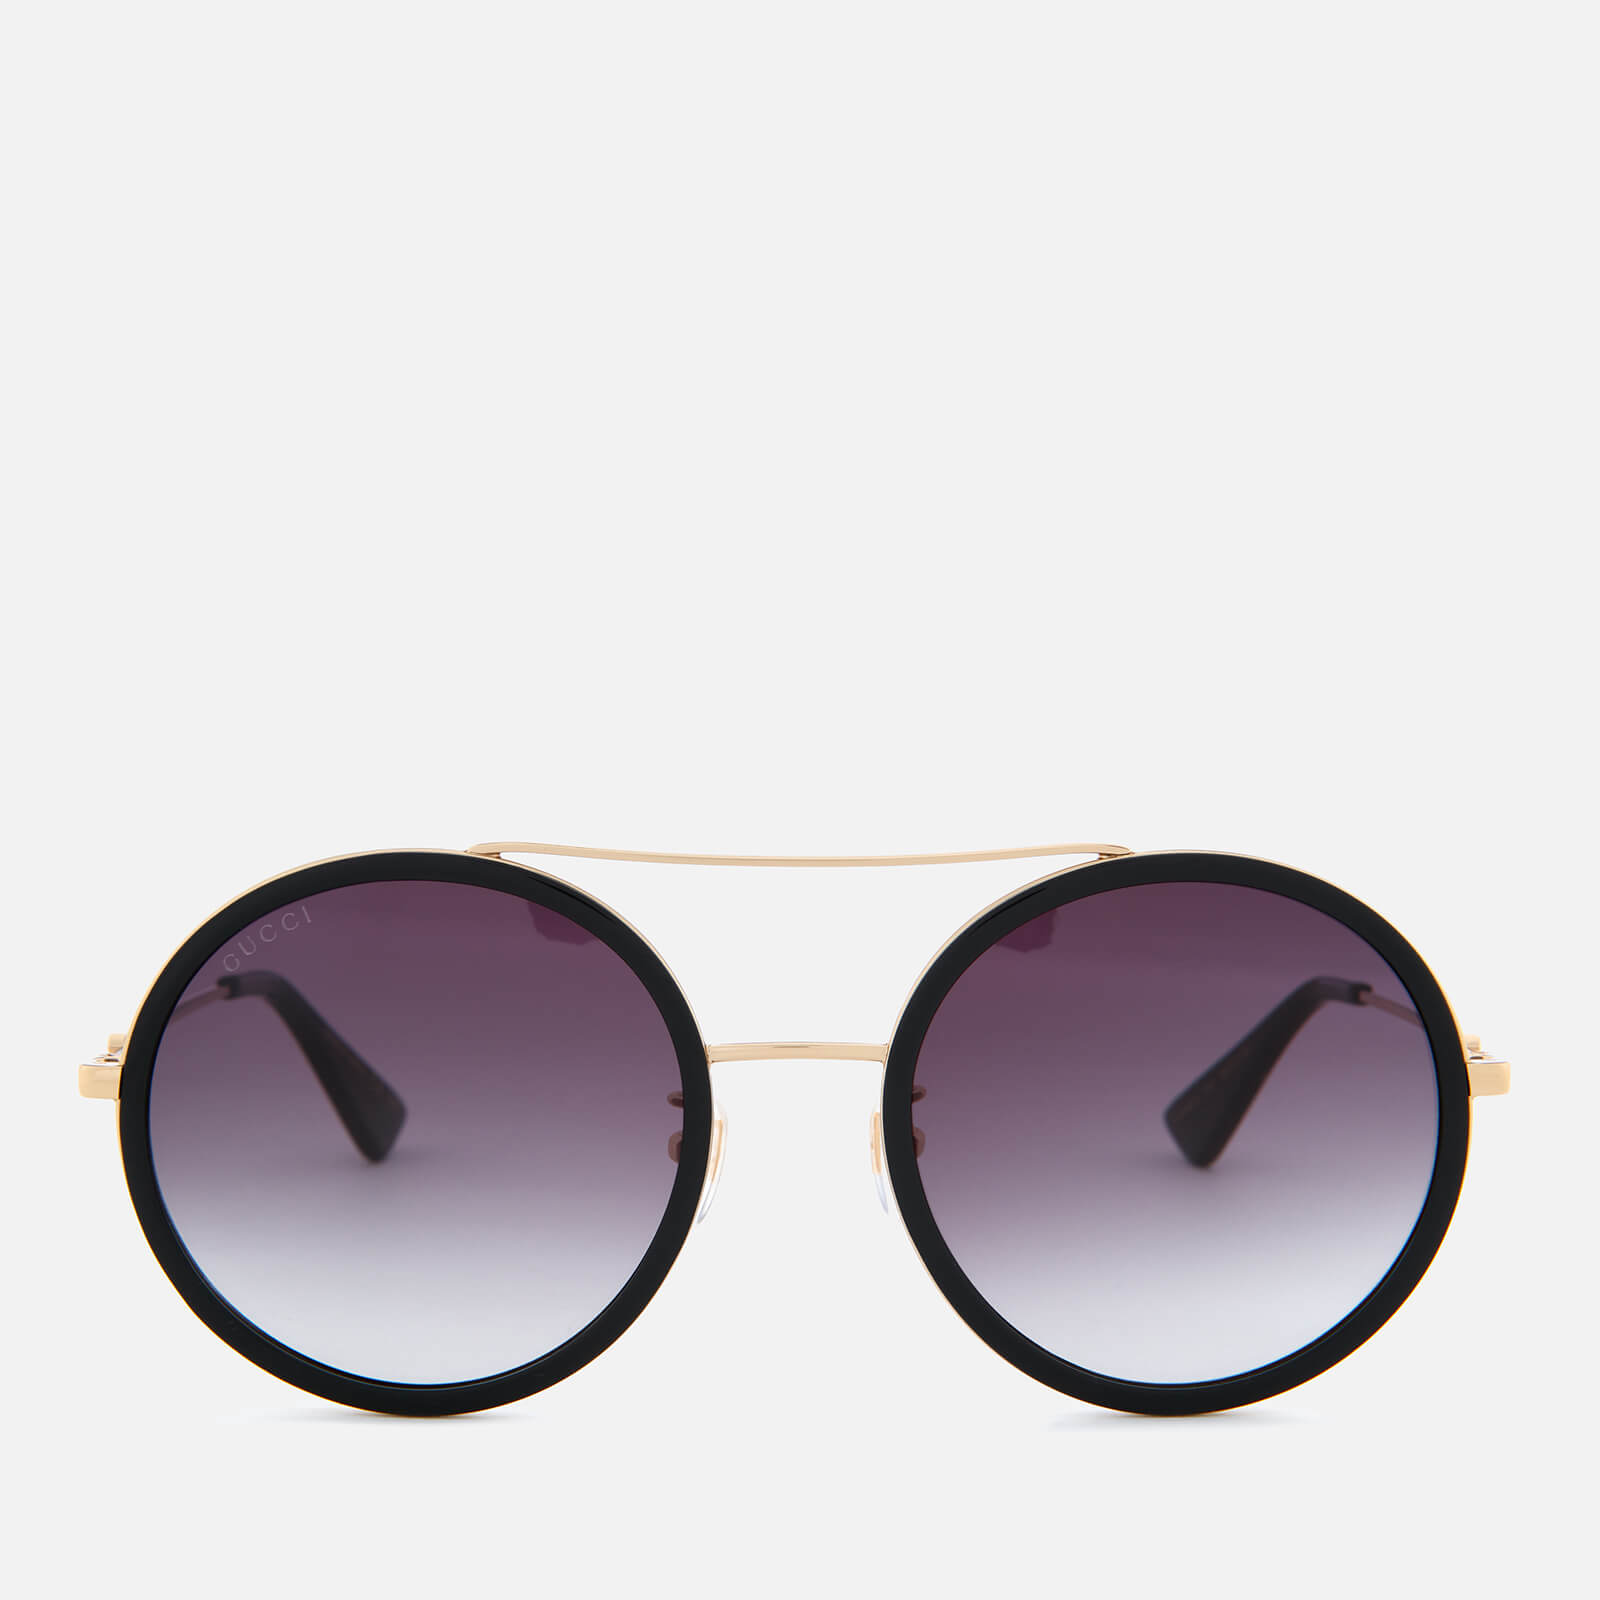 609954b95c Gucci Women s Metal Frame Round Sunglasses - Gold Grey - Free UK Delivery  over £50